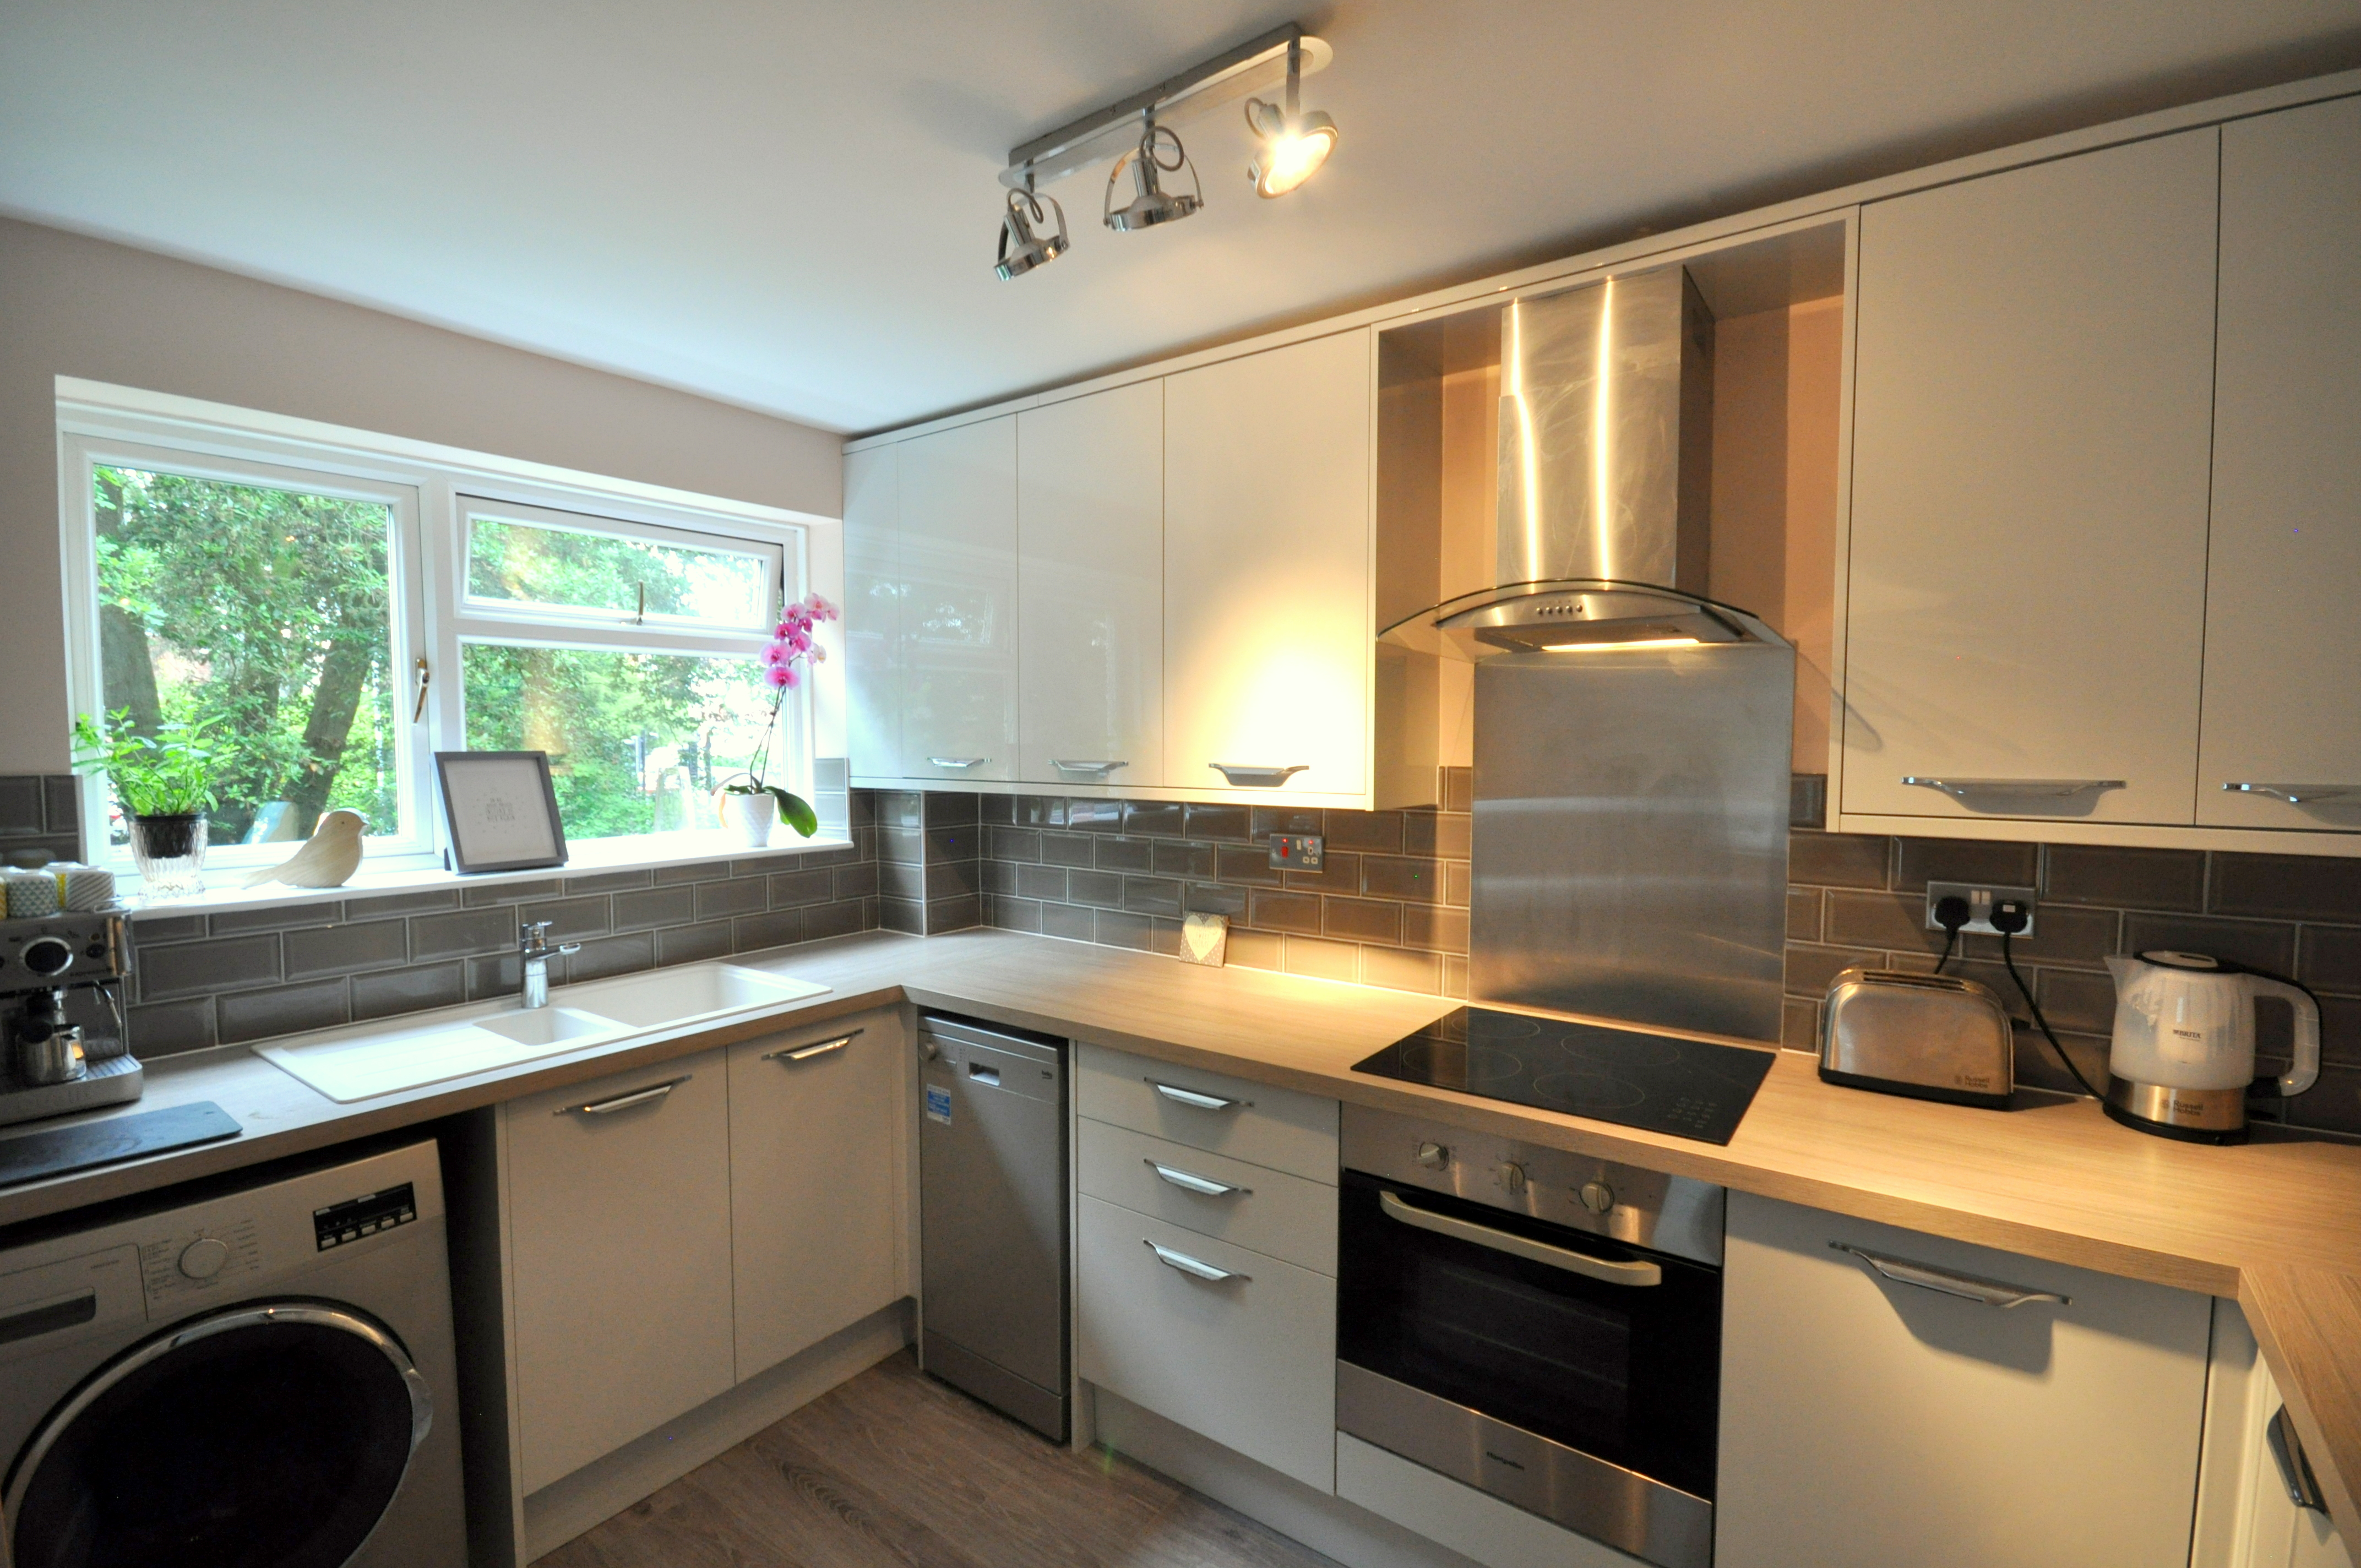 Champion kitchen fitters installed this modern new kitchen in Poole